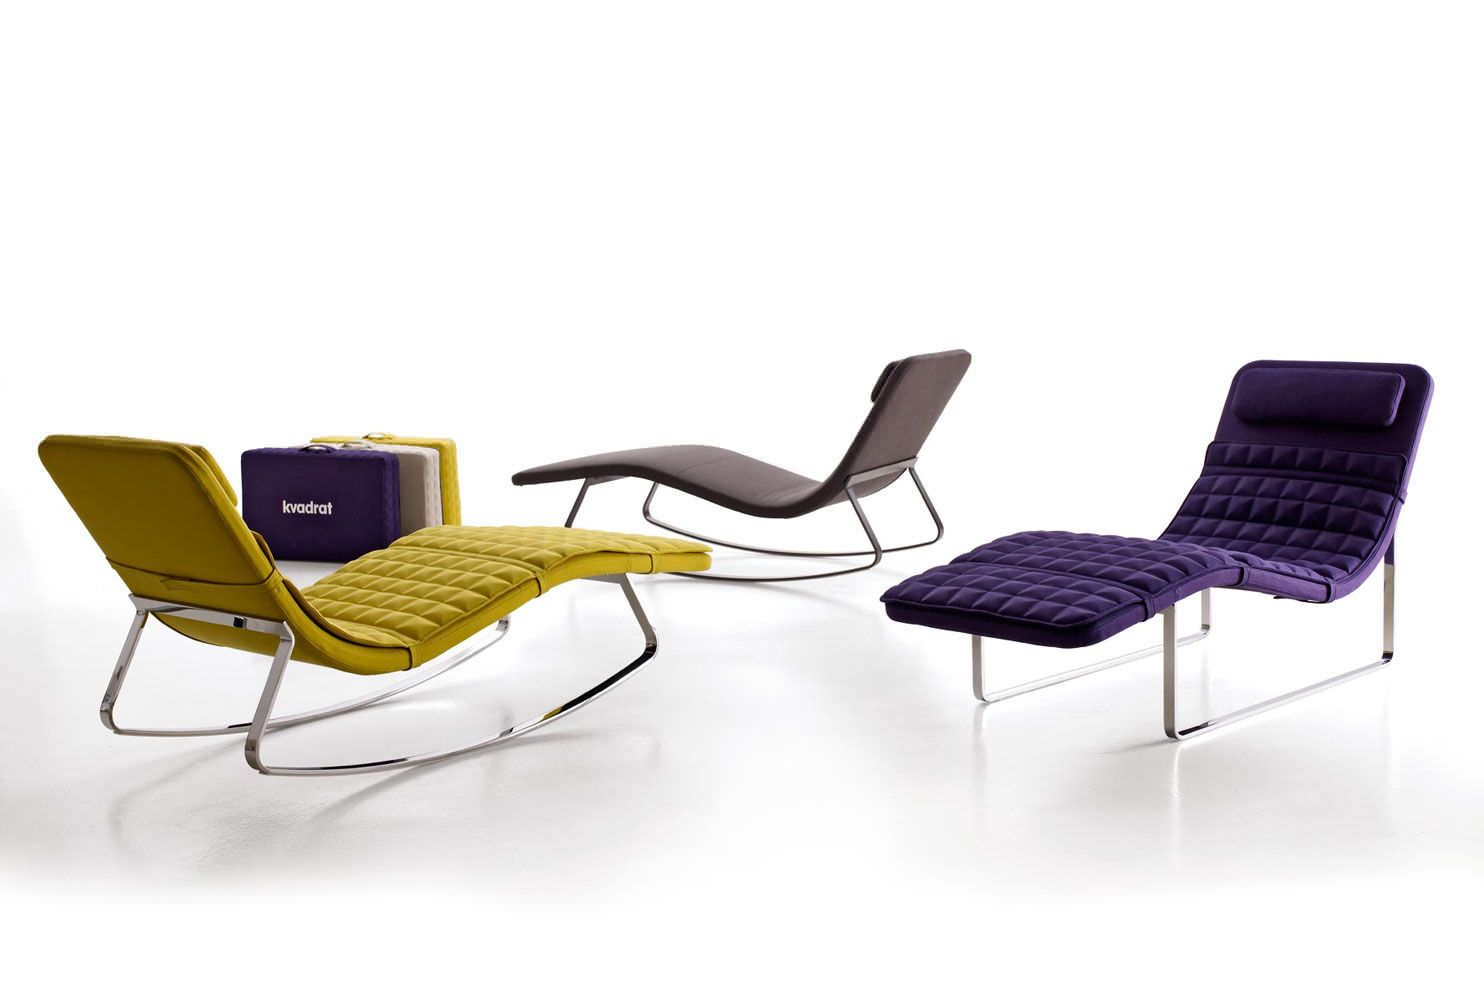 contemporary-lounge-chairs-11276-3701167.jpg (1484×1000)